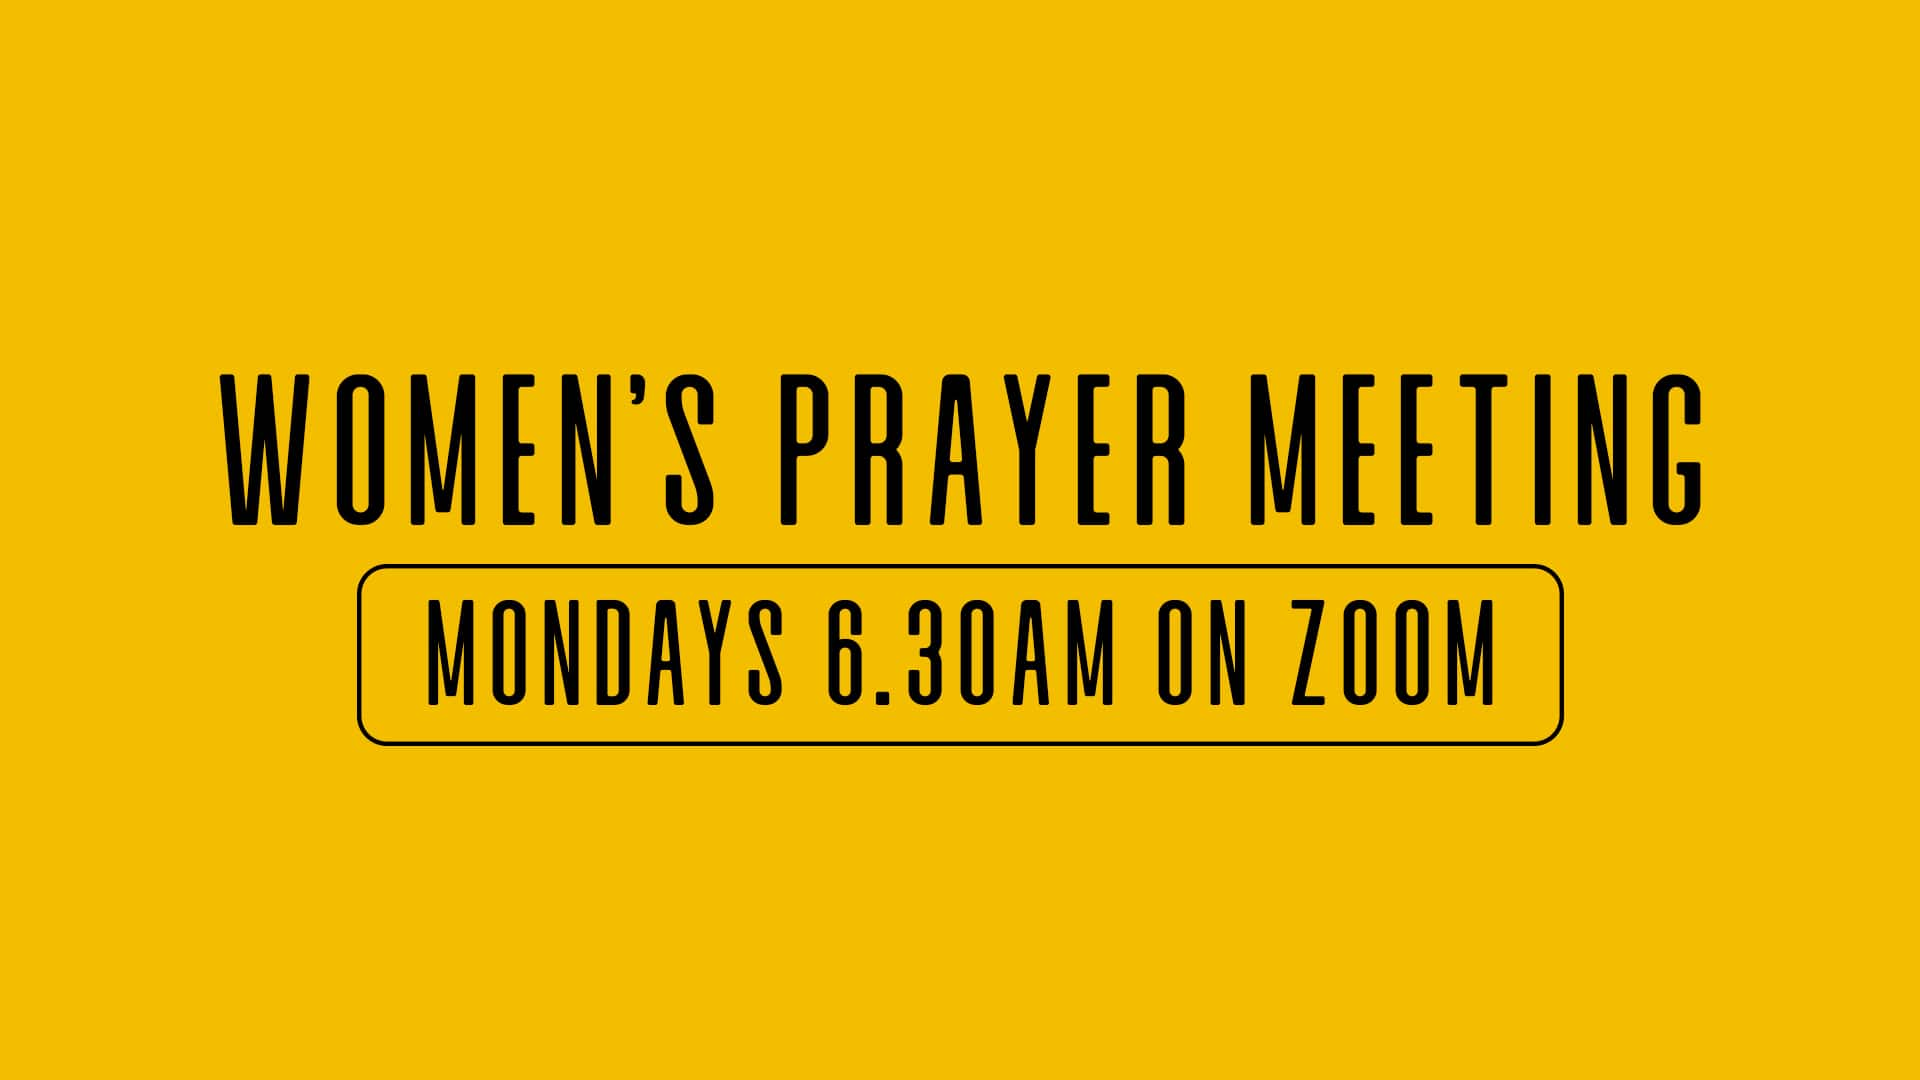 Women's prayer meeting